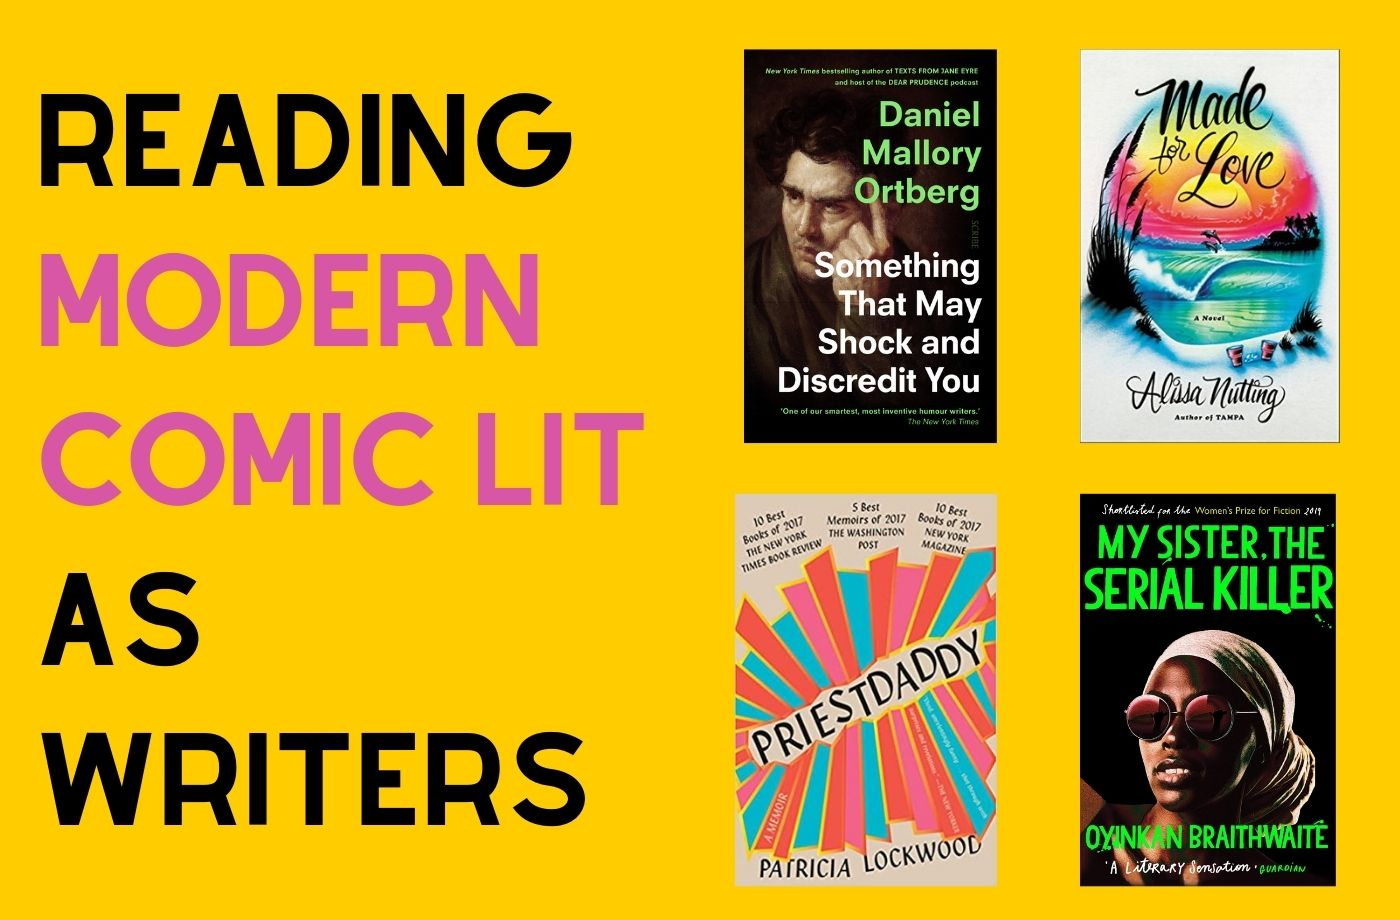 Catapult online classes: Caitlin Kunkel, 4 Weeks of Reading Modern Comic Lit as Writers Online, Nonfiction, Reading Group